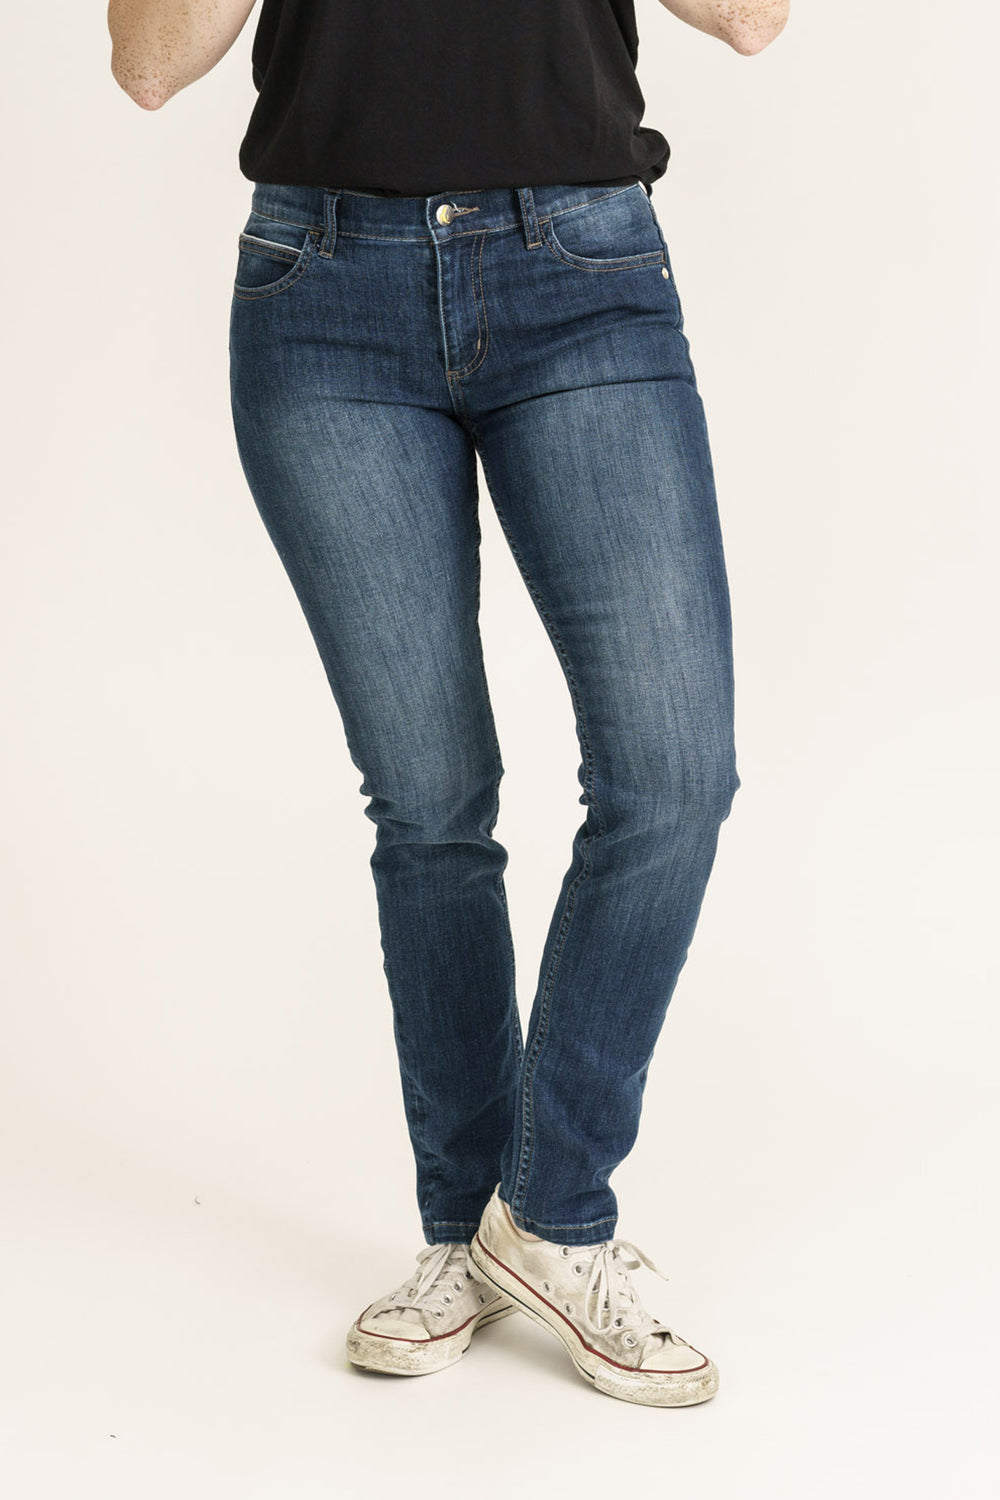 Dark Denim Classic Skinny Fit Organic Jeans - Monkee Genes Organic Jeans Denim - Women's Classic Skinny Monkee Genes Official  Monkee Genes Official